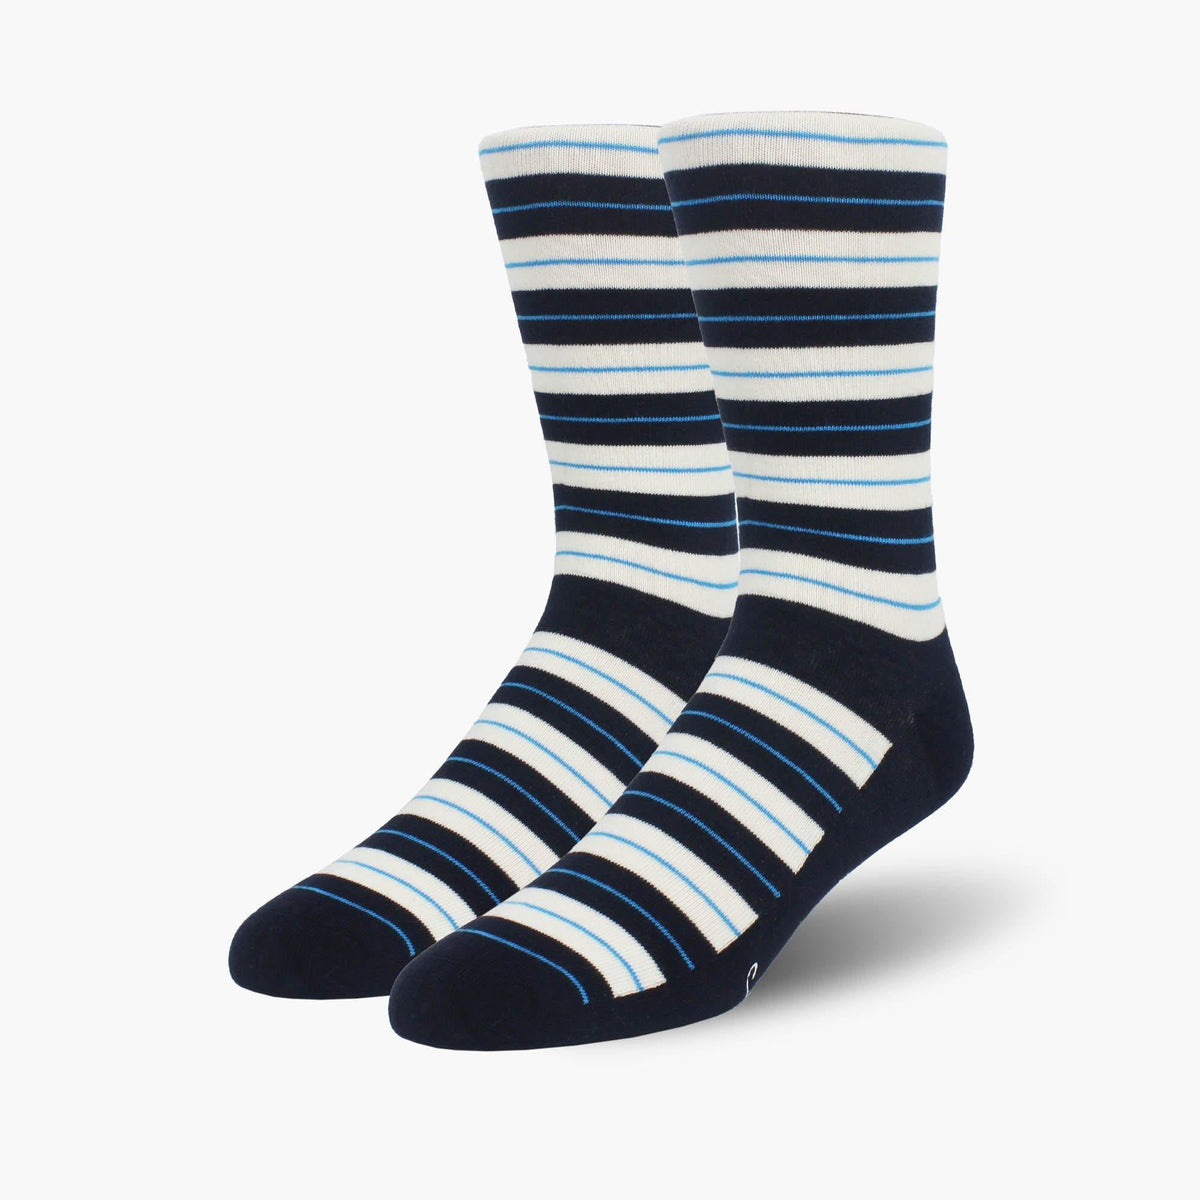 Blue Striped Combed Cotton Crew Length Swanky Socks - SwankySocks